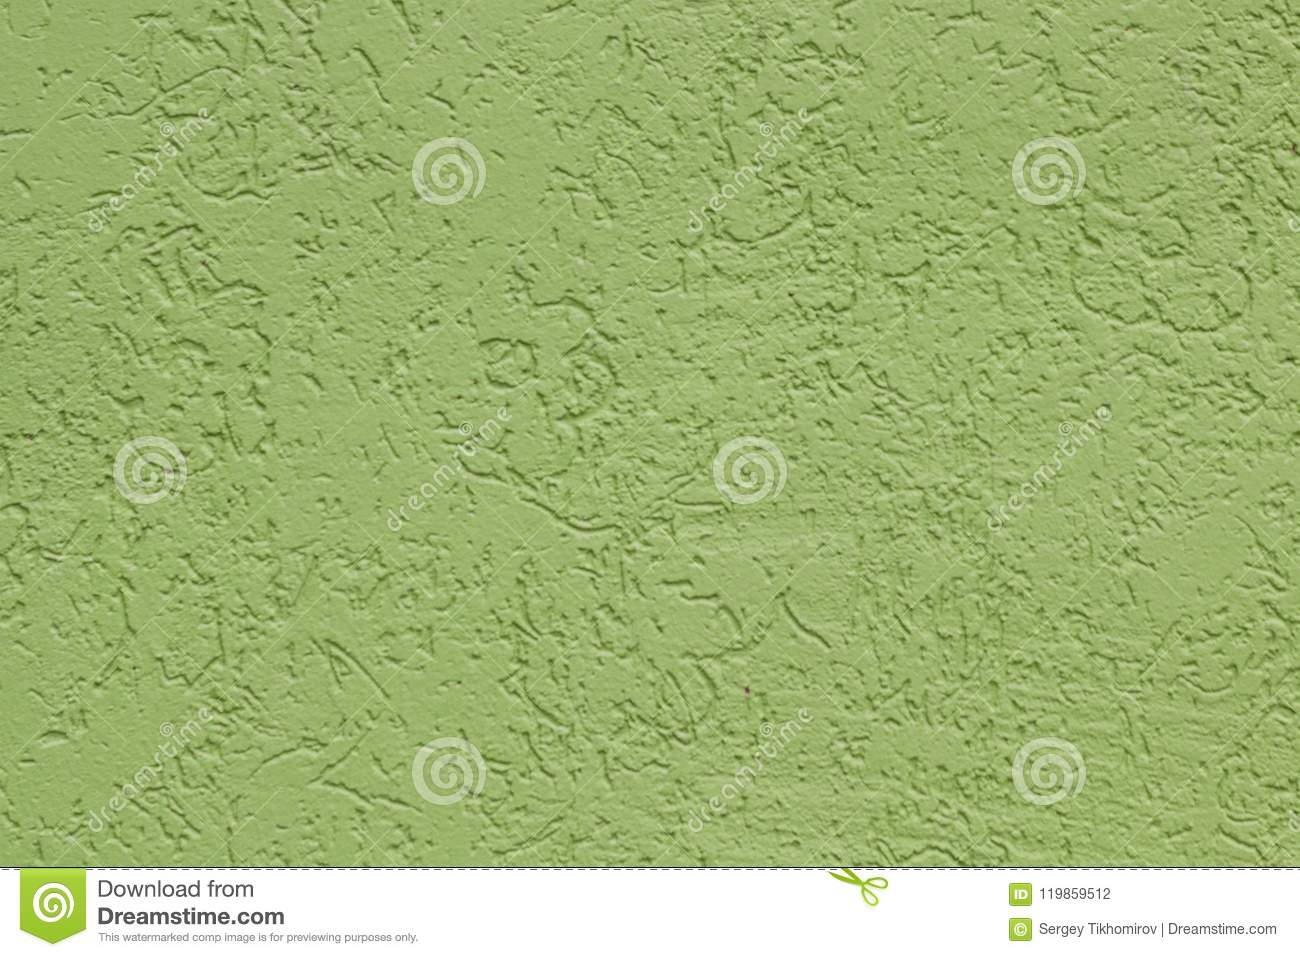 Green flat rough painted cement wall with many cavities. Seamless texture. Used as a background.